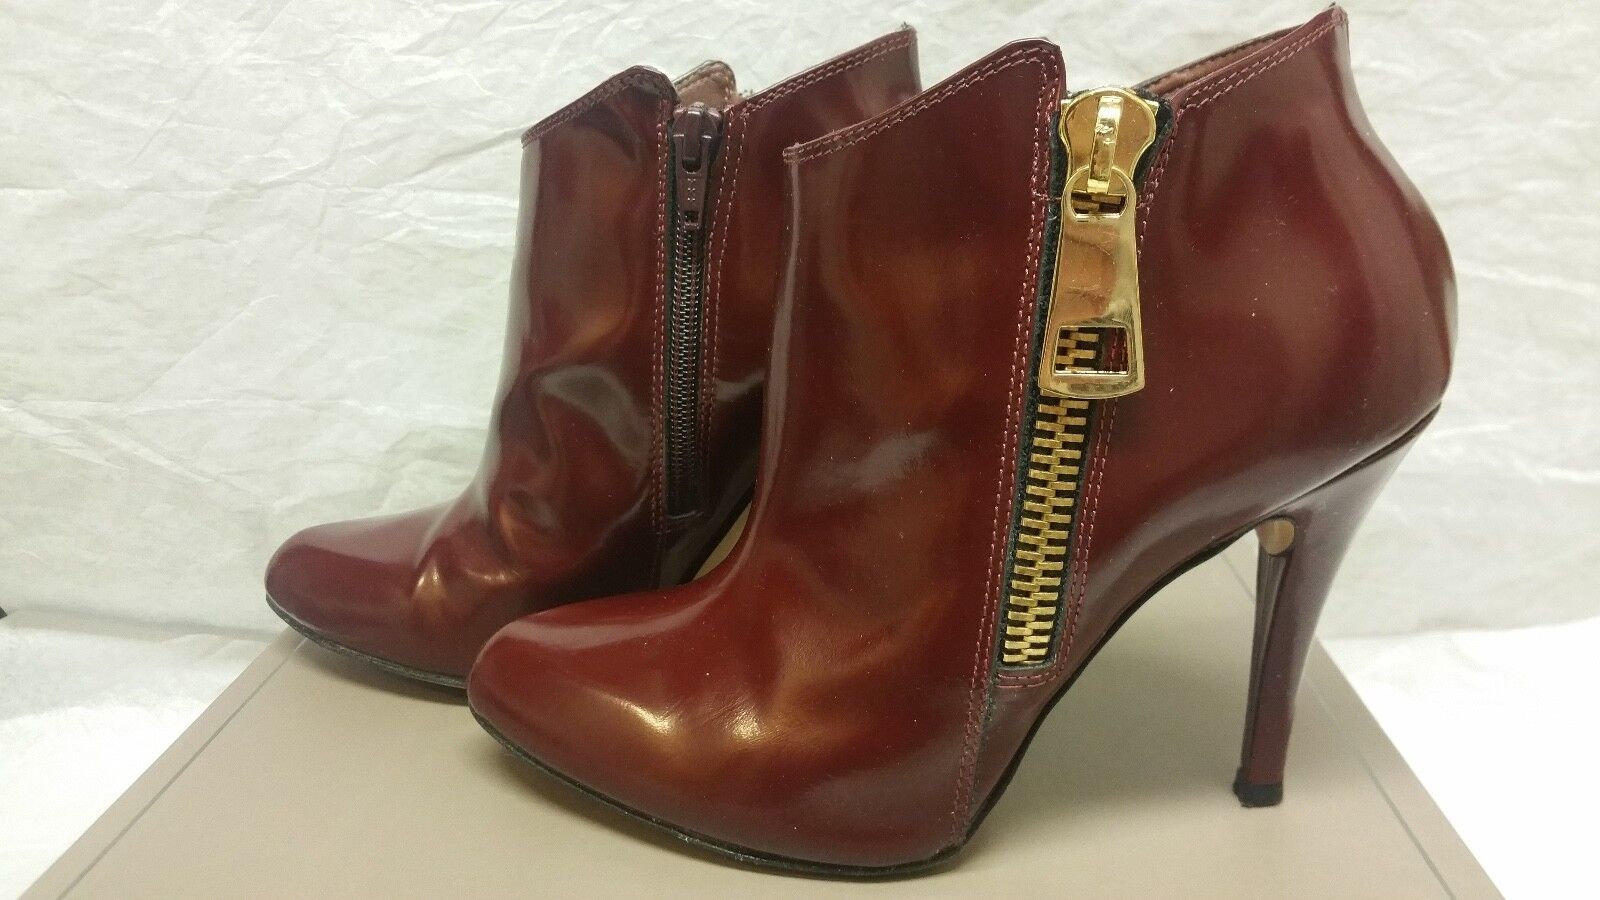 BCBG Alessio High-Heel Leather Ankle Booties Burgundy Sz 8.5 or 38.5 SRP